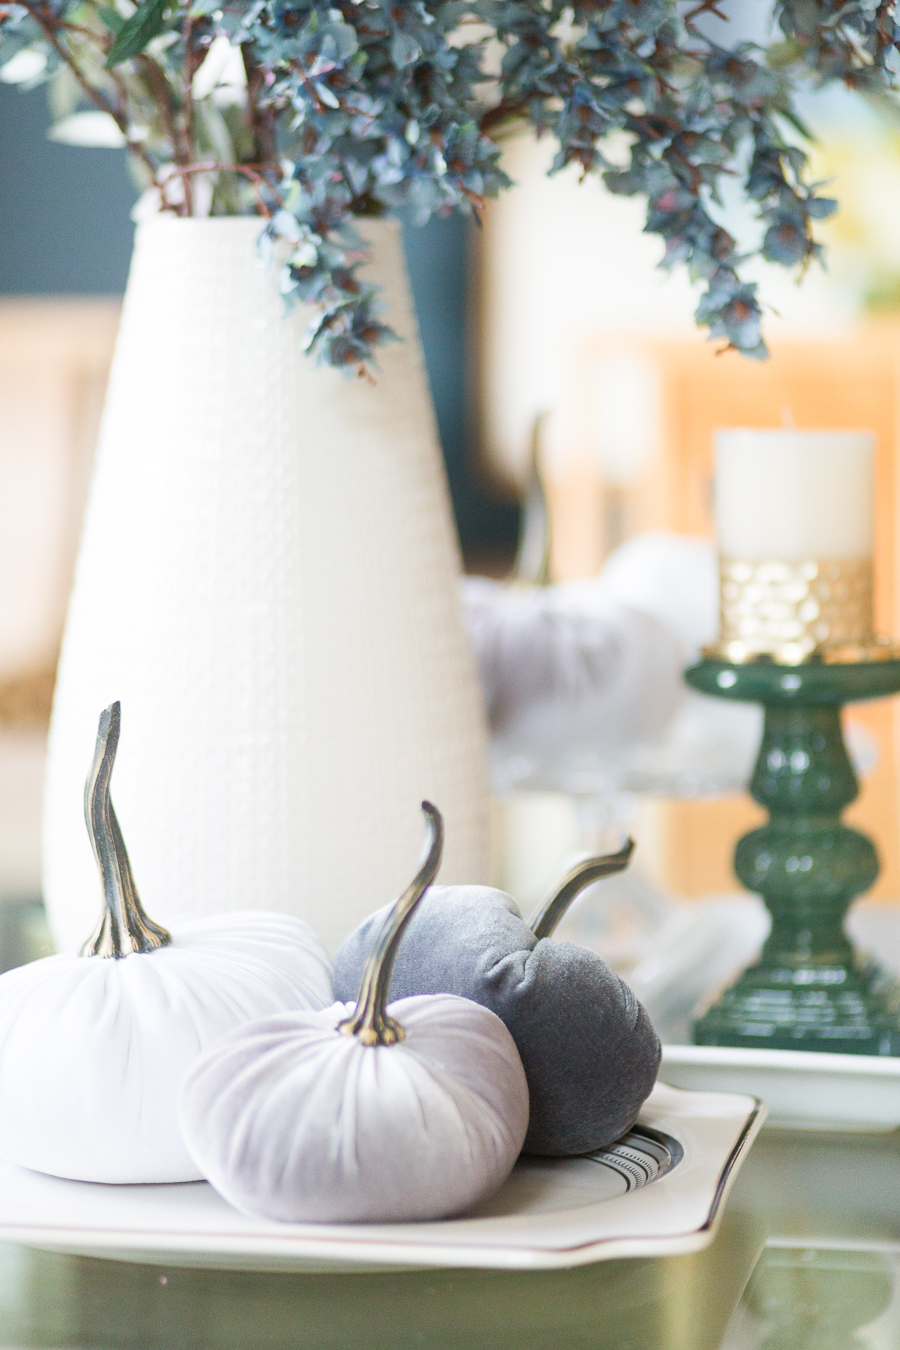 Loveliest Looks of Fall Home Tour Beautiful Fall Home Decor and Fall Fashion Ideas dining room fall tablescape with velvet pumpkins and a white large vase with faux green stems